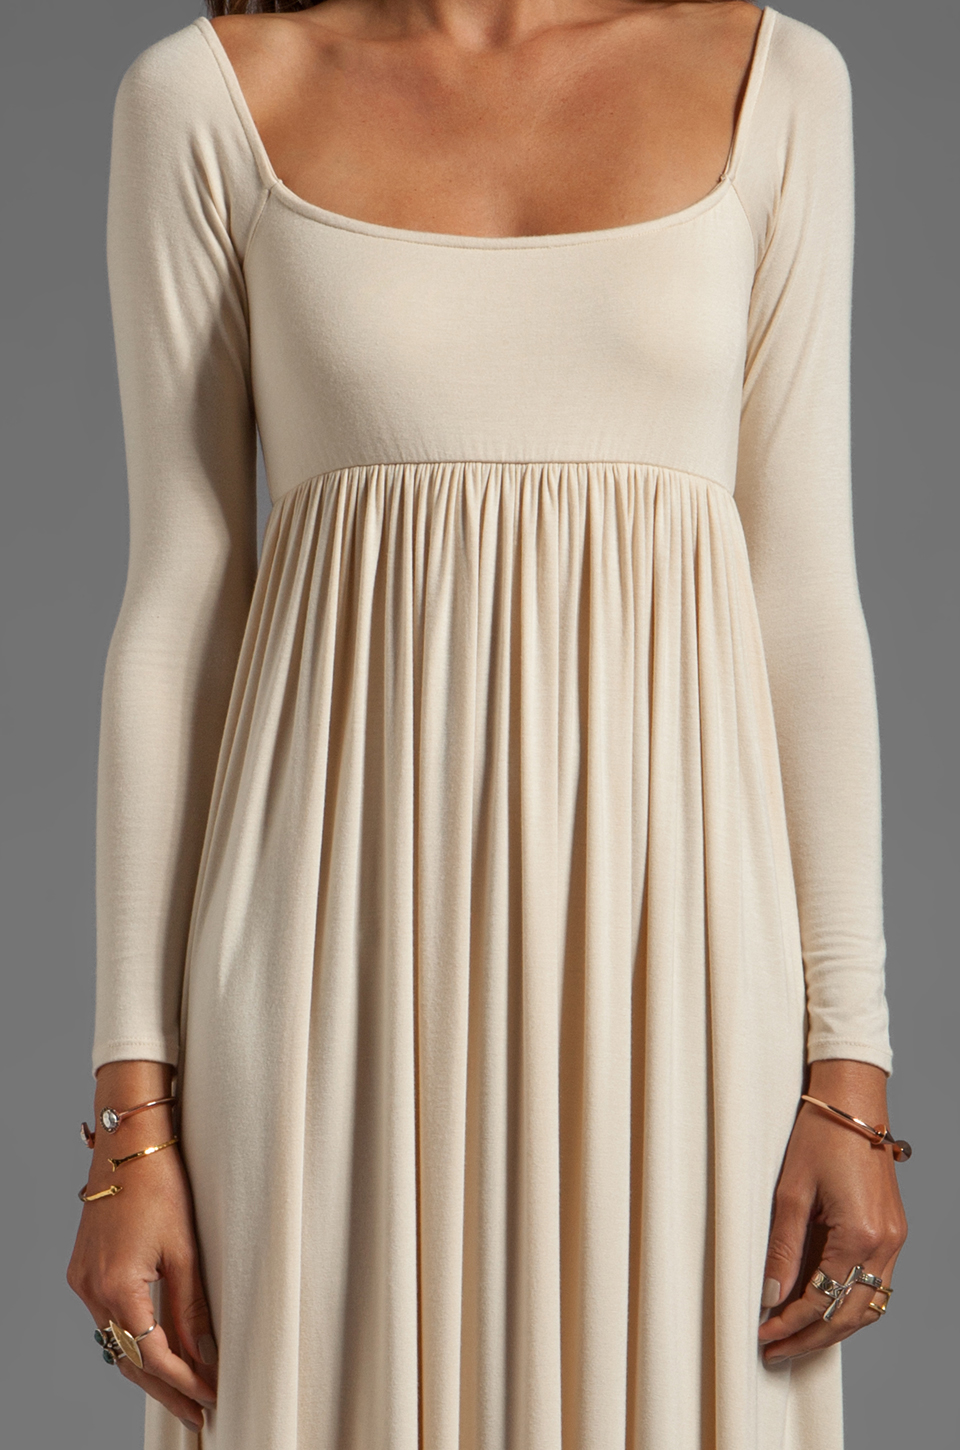 Lyst rachel pally isa pleated dress in natural gallery ombrellifo Image collections